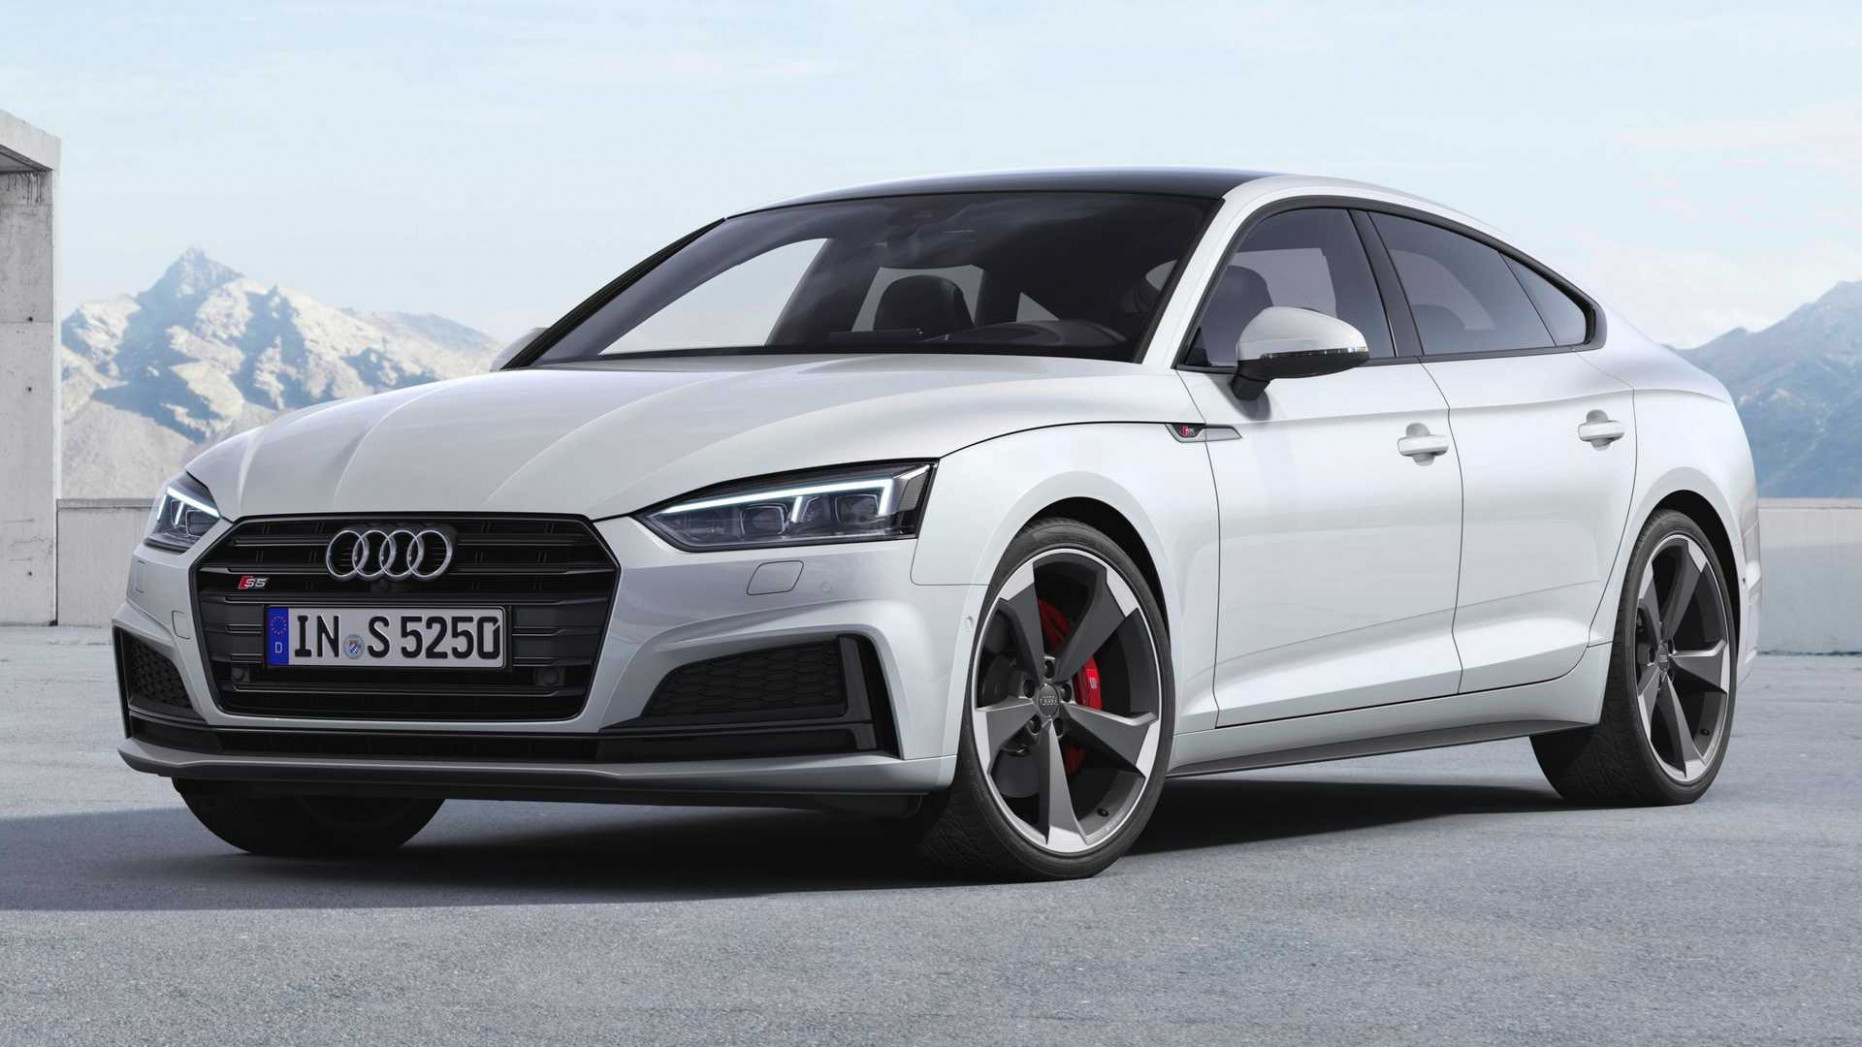 Price and Release date 2022 Audi Rs5 Tdi